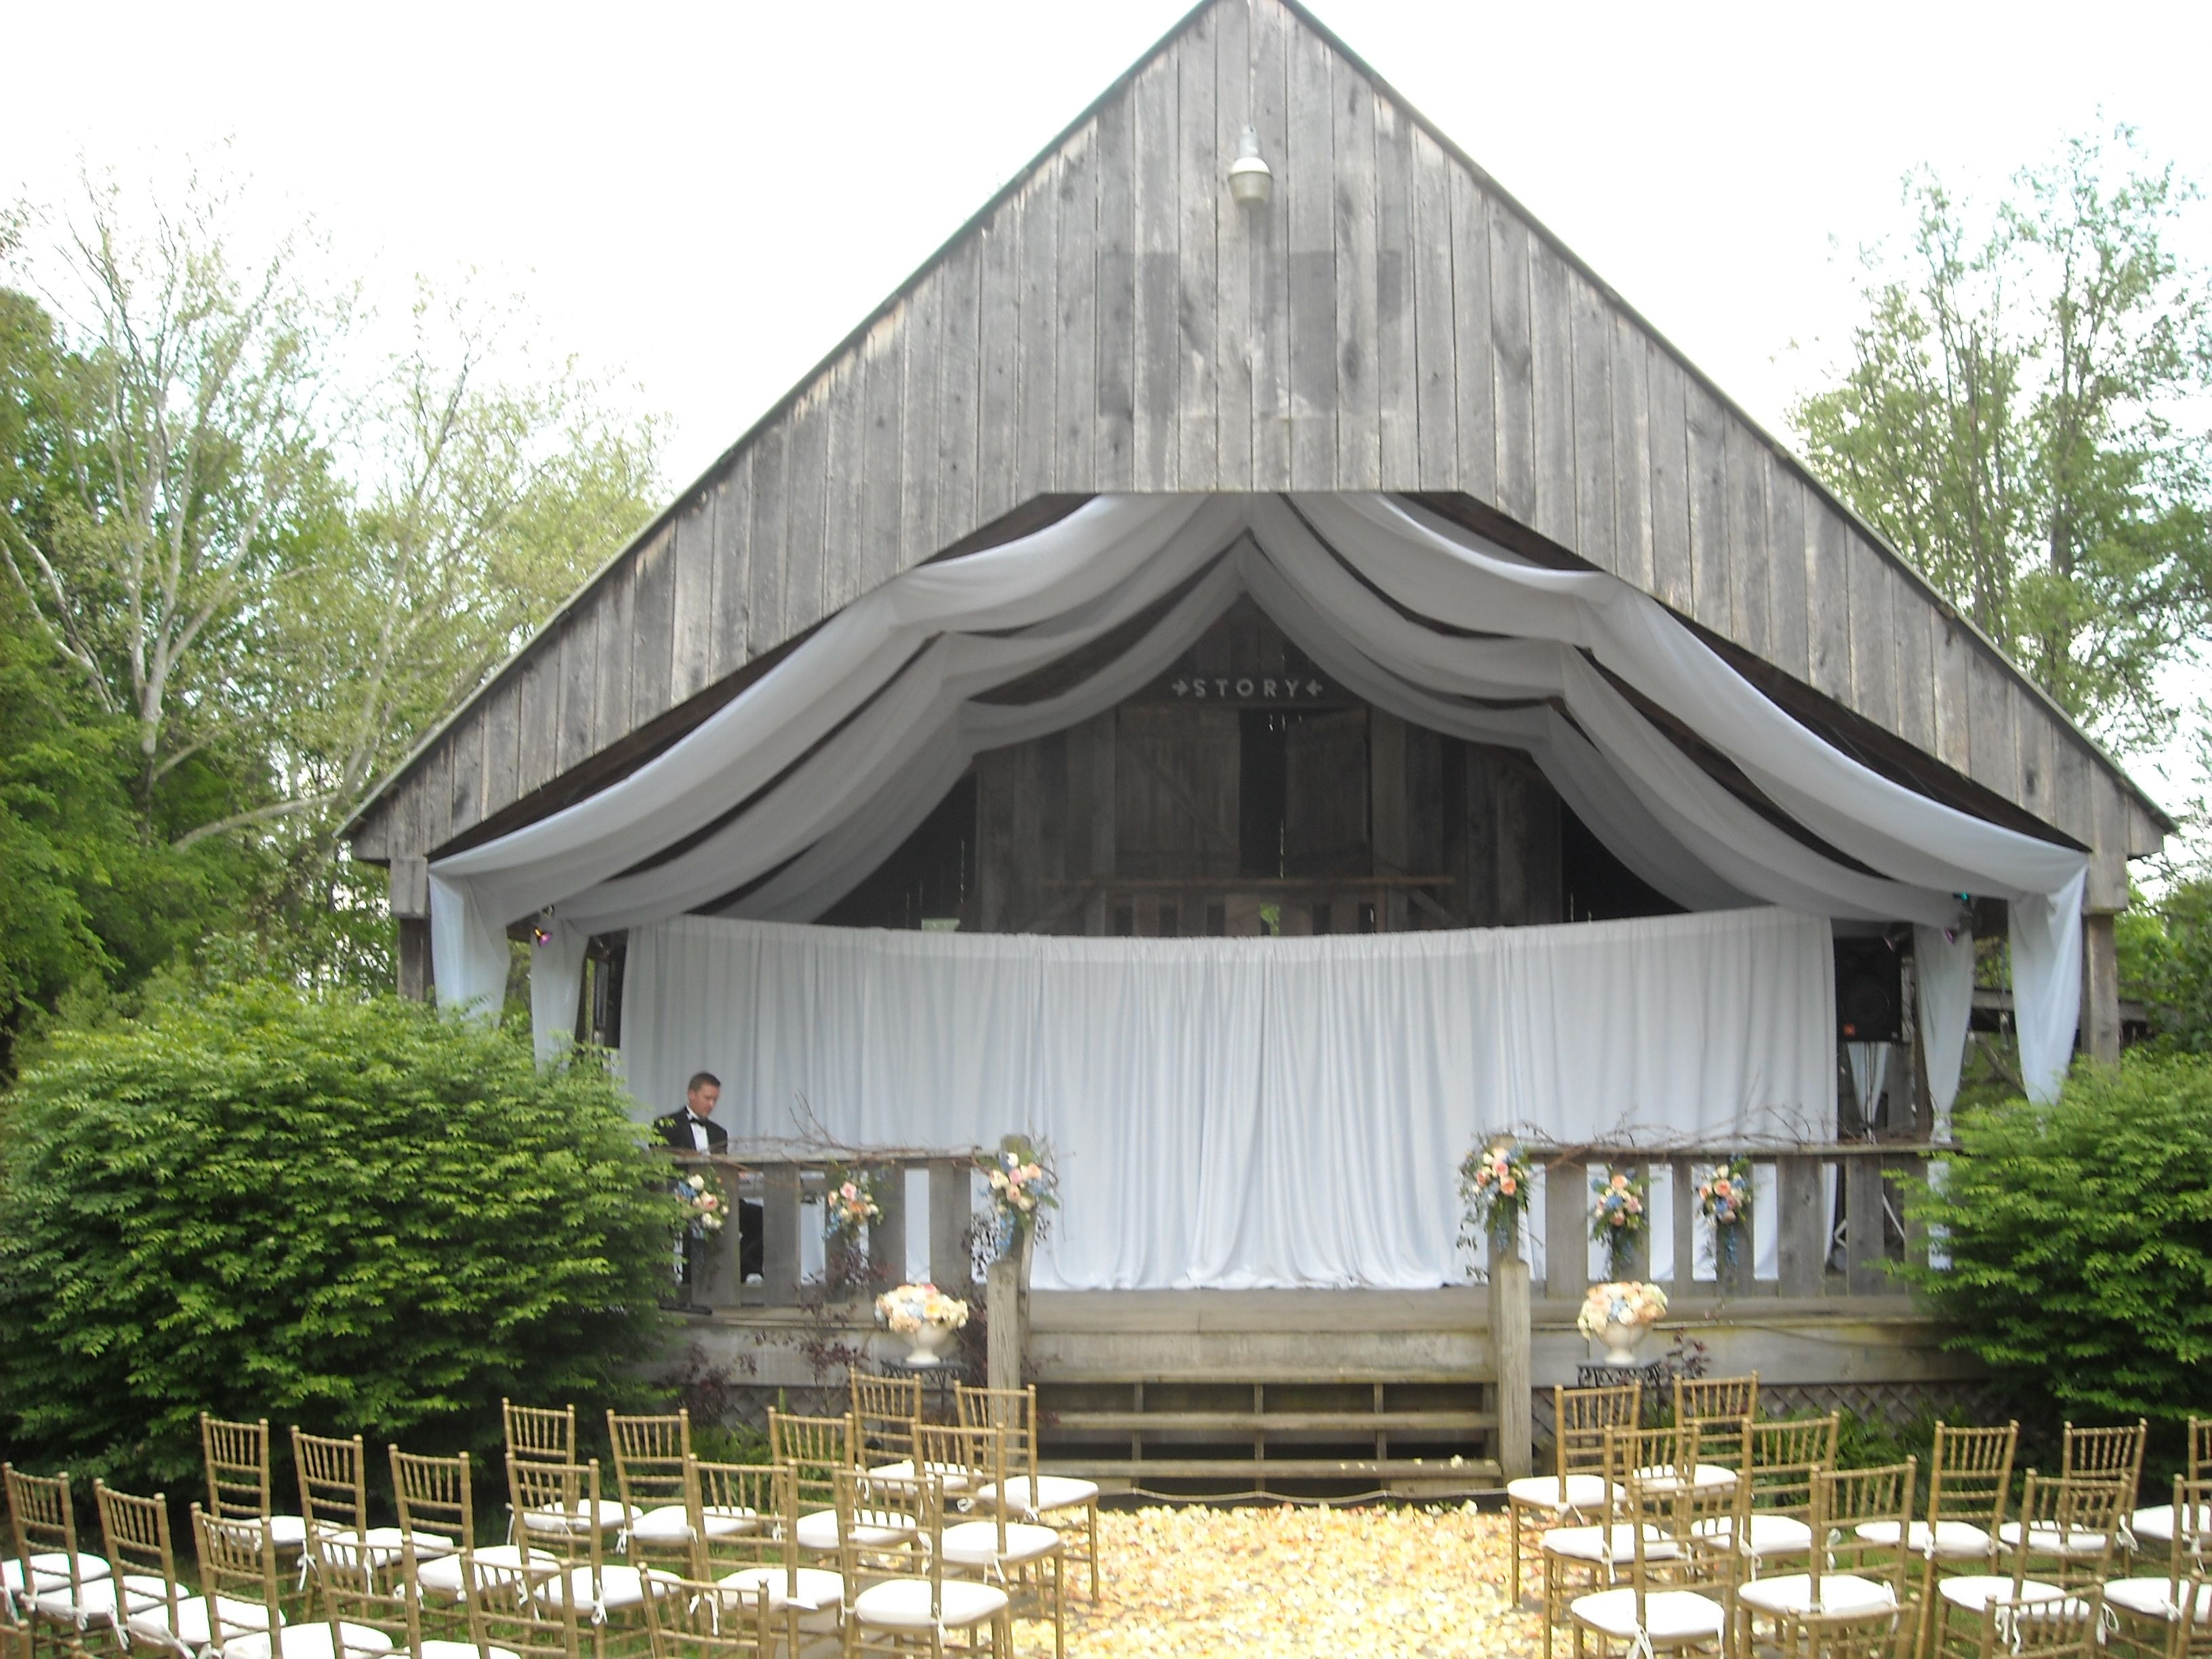 Drapery And Fabric Ceiling Swag Liner For Barn Alter At Story Inn Indiana